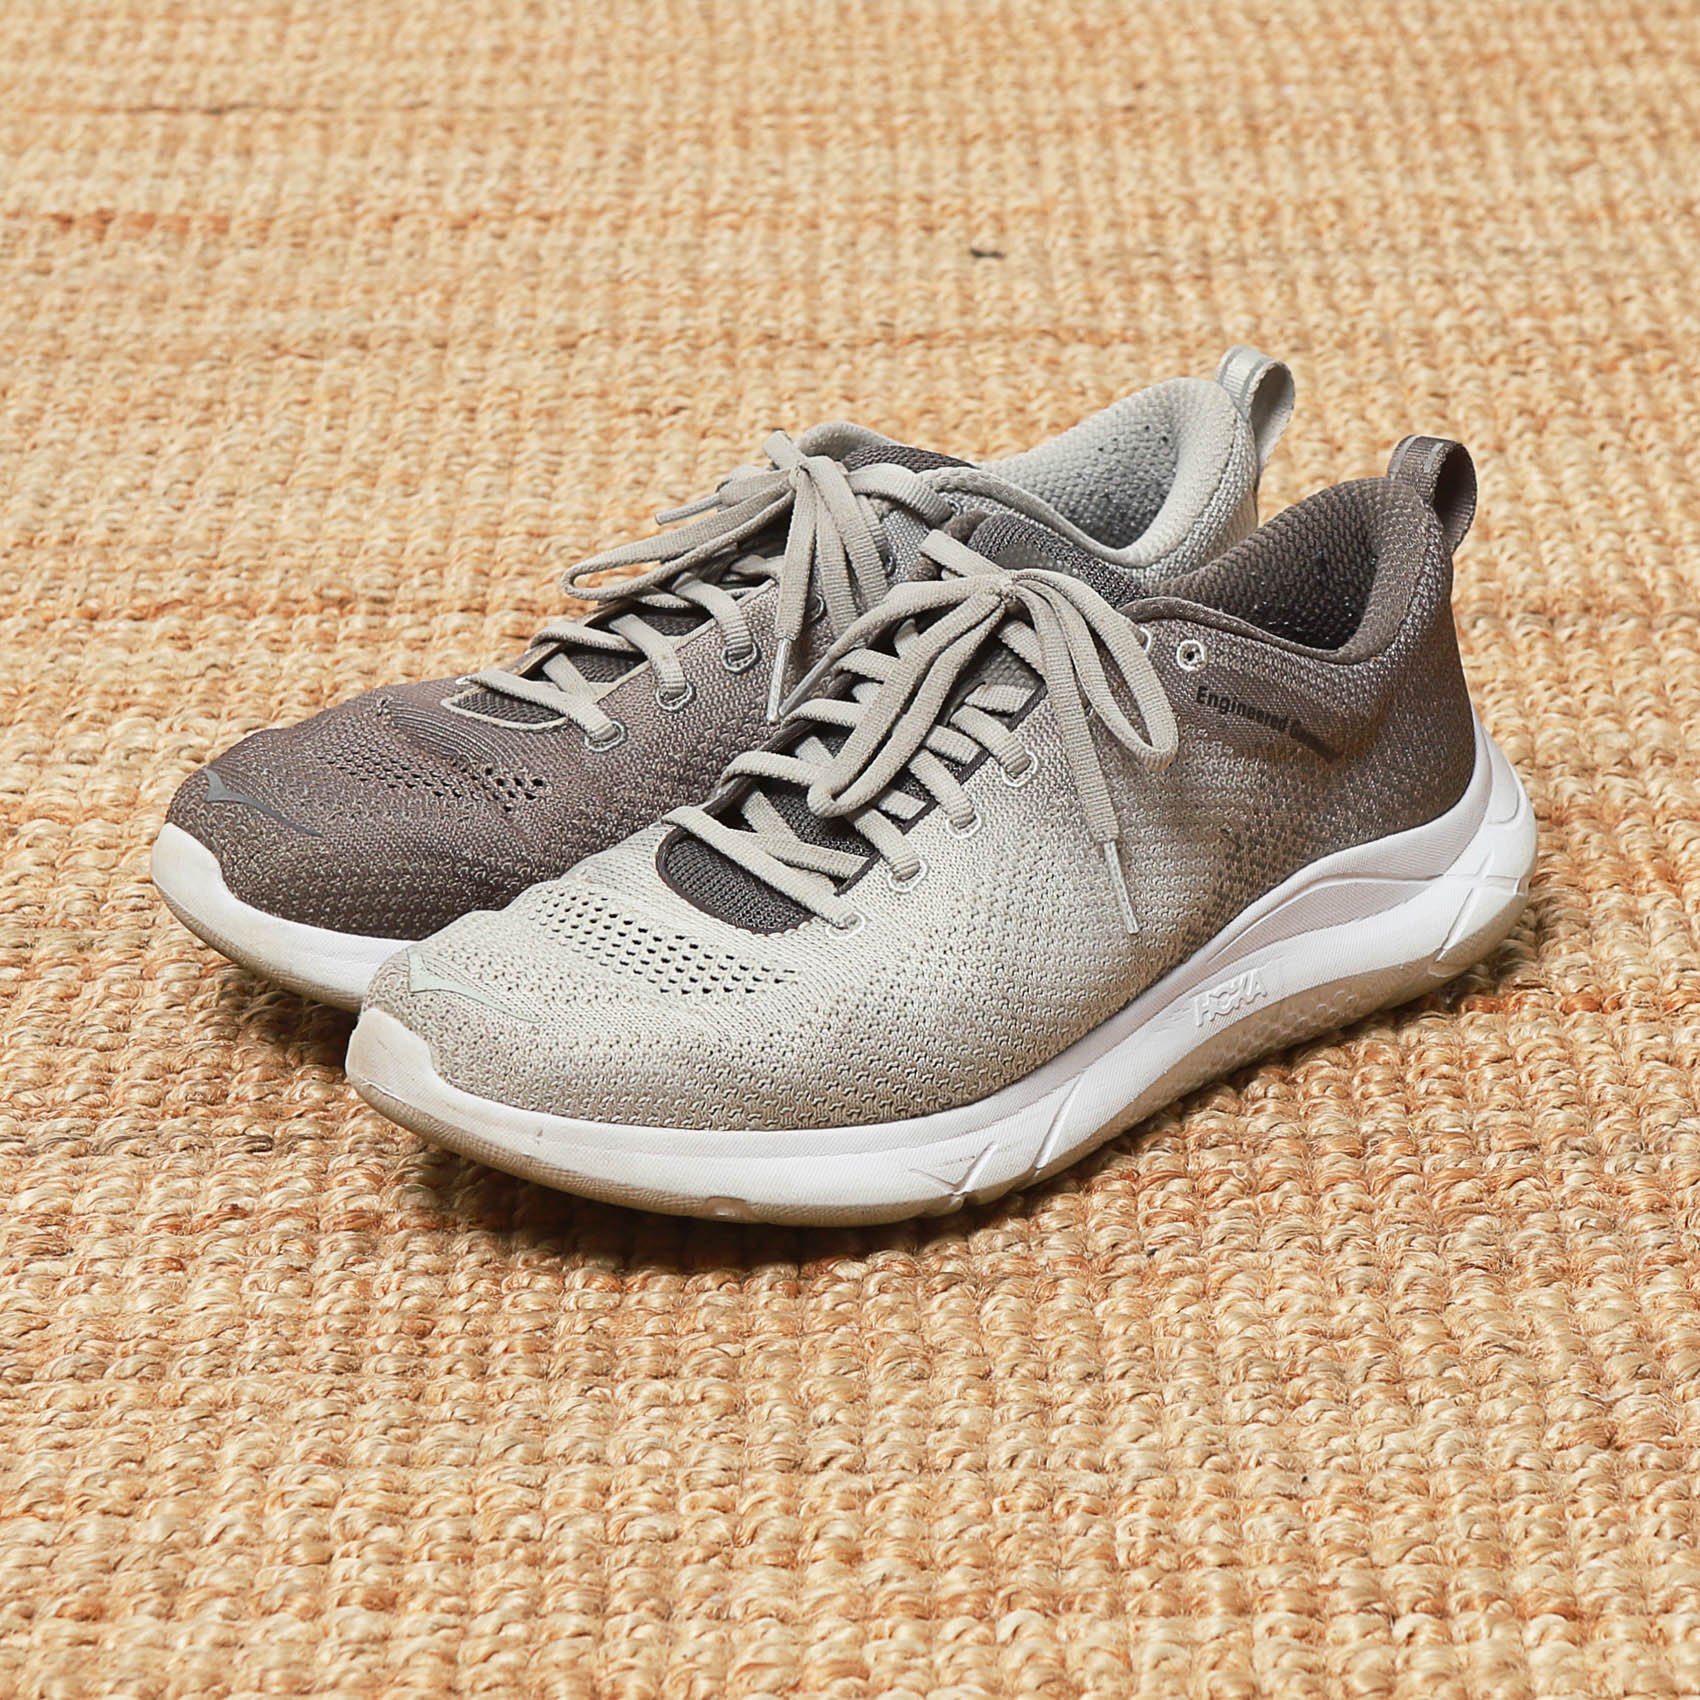 HOKA ONE ONE X ENGINEERED GARMENTS HUPANA - GRAY